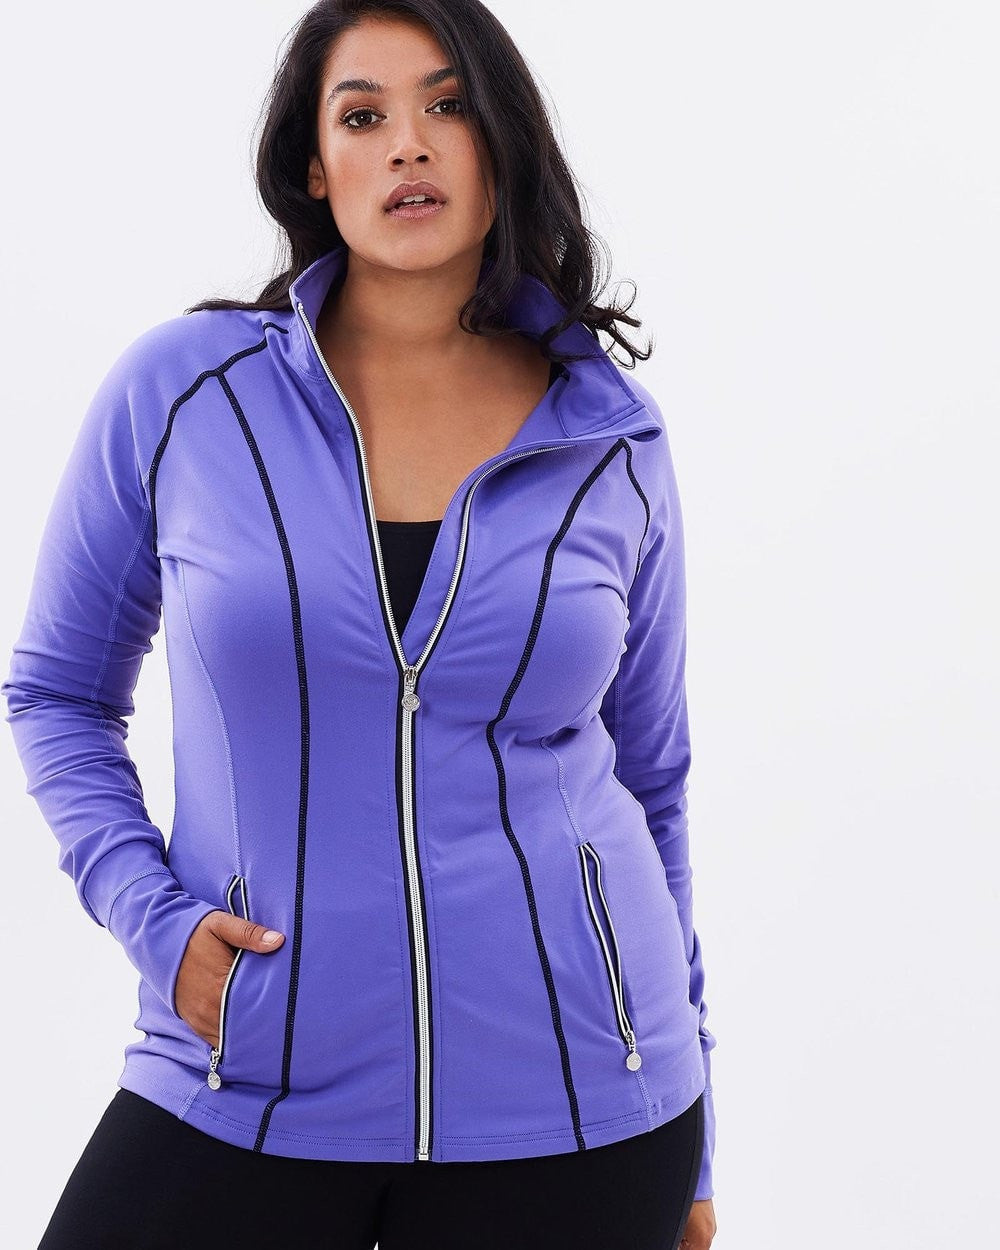 Bicheno Jacket - Be Activewear